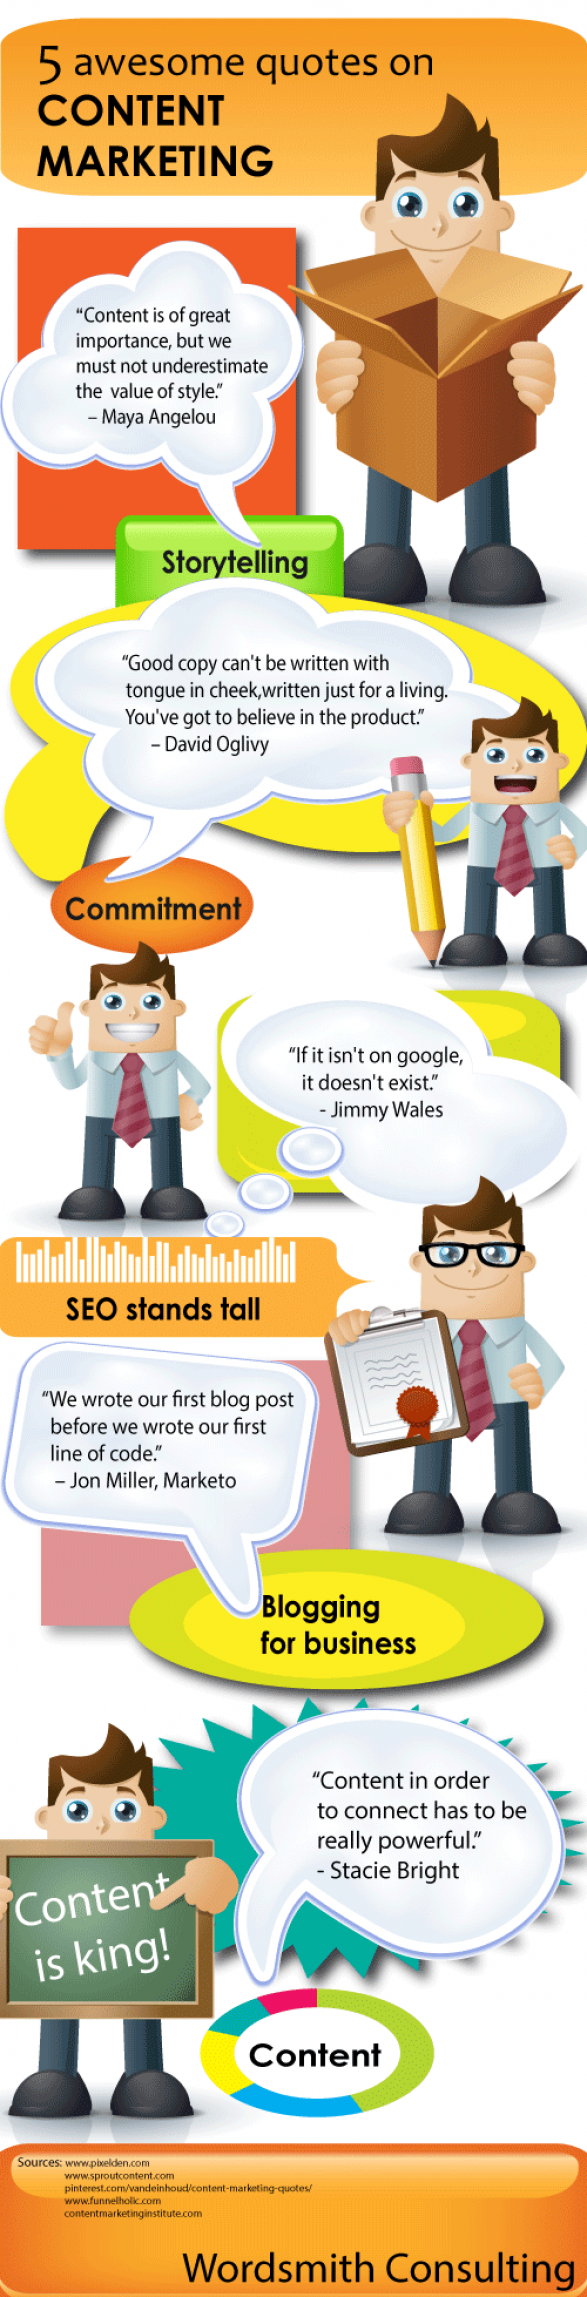 5 awesome quotes about content marketing